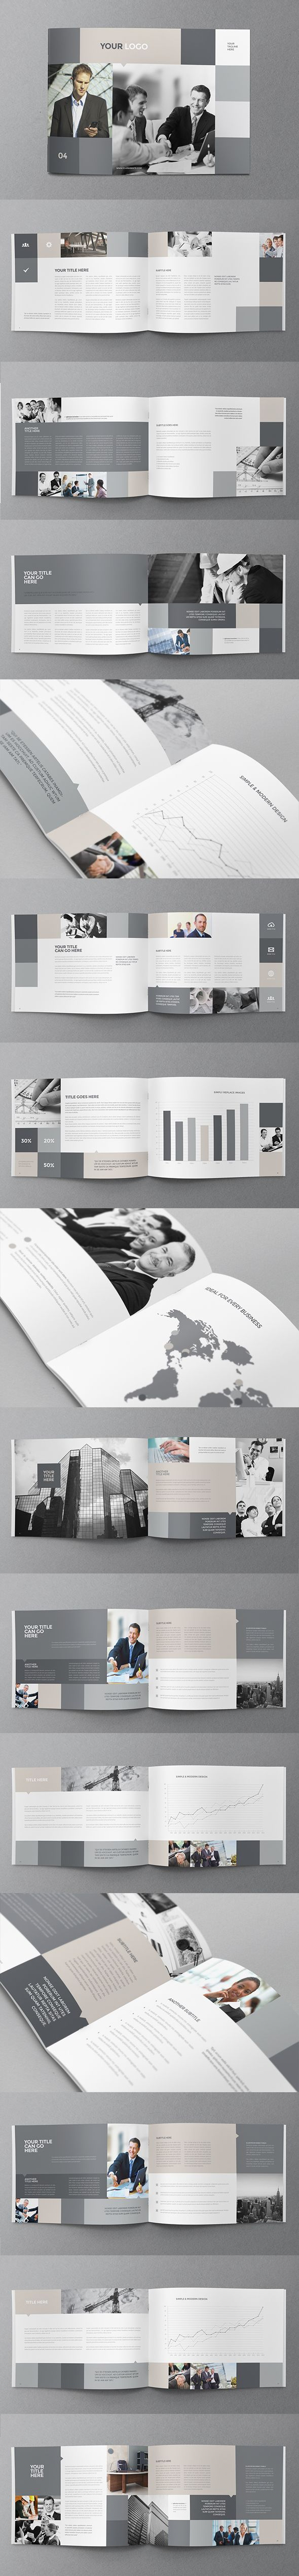 #portfolio Simple Business Grey Brochure. Download here: http://graphicriver.net/item/simple-business-grey-brochure/11682709?ref=abradesign #brochure #design